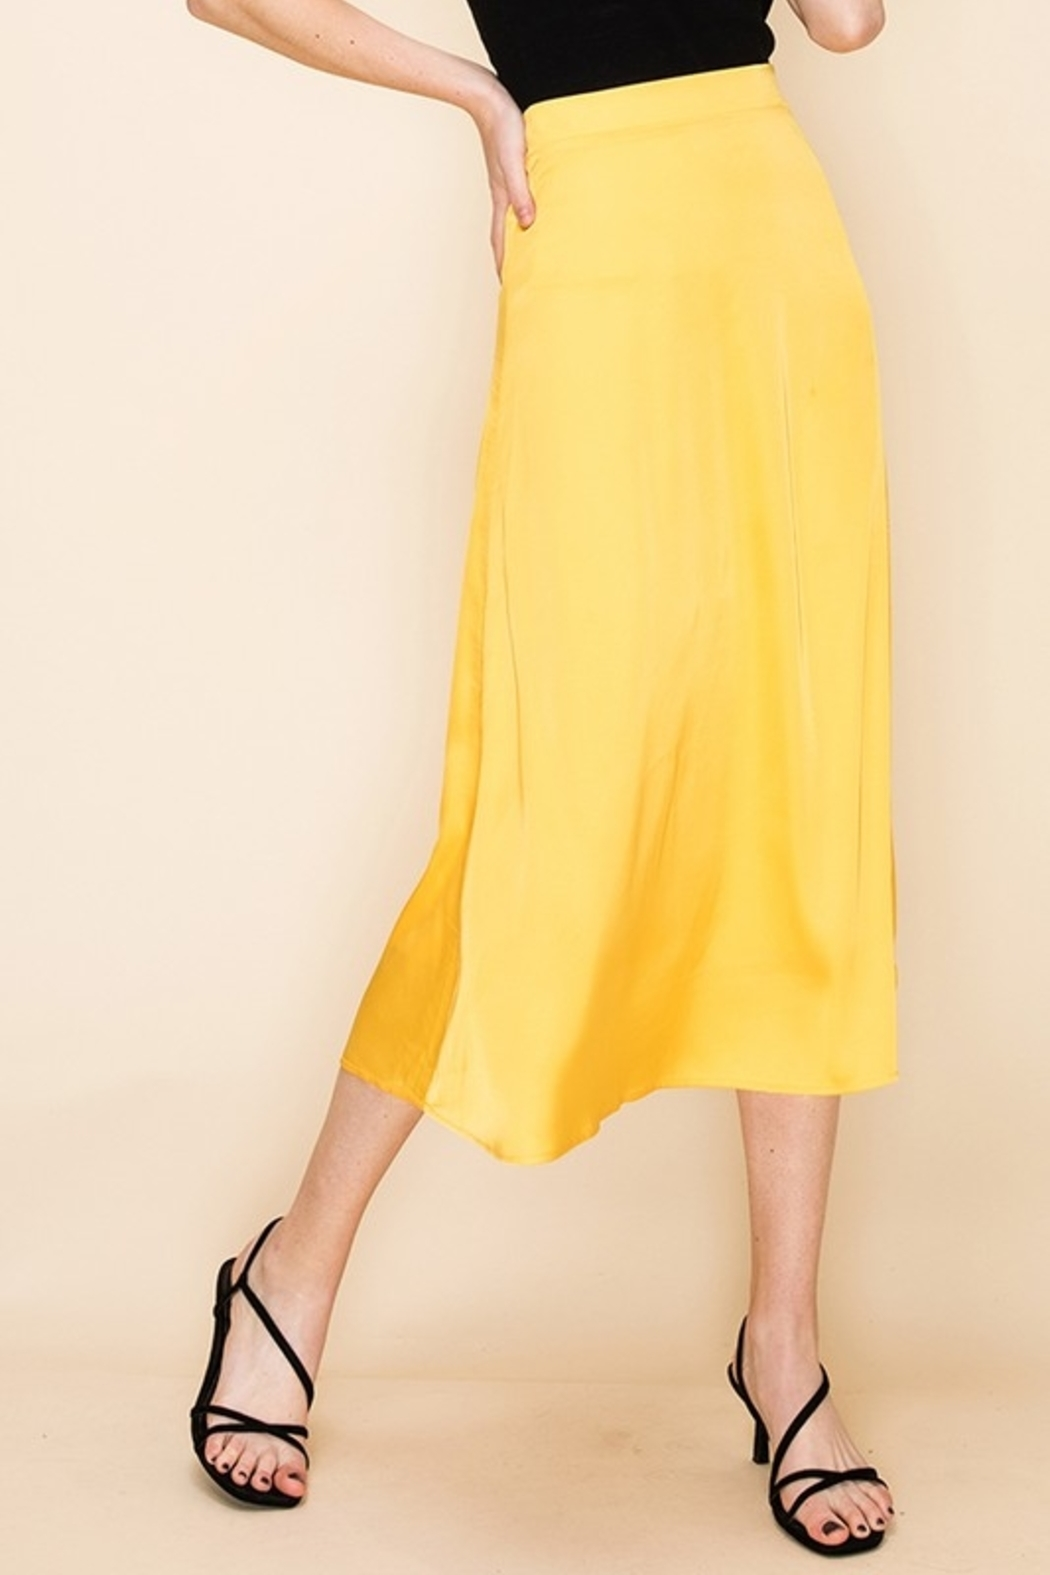 Double Zero Satin Midi Skirt - Main Image